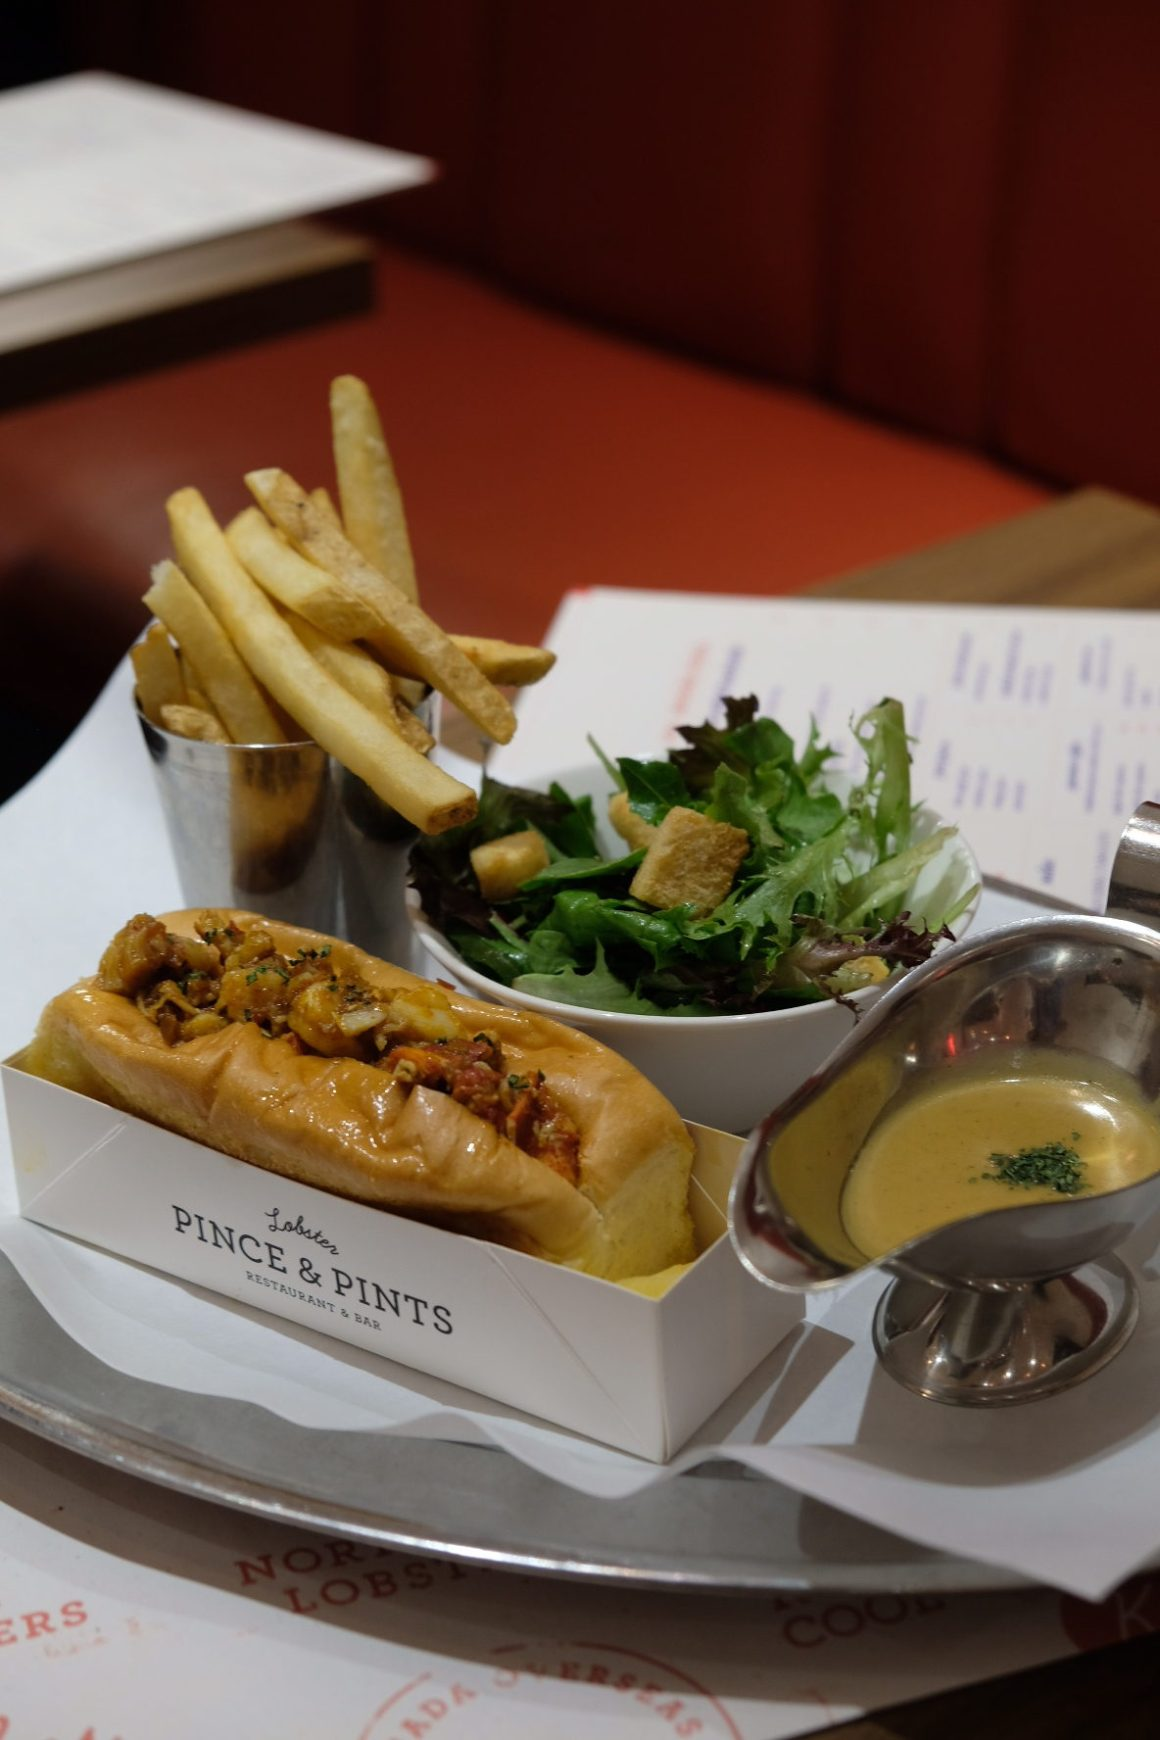 Brand New Crab Menu By Pince & Pints - Nonya Chilli Lobster Roll ($18)